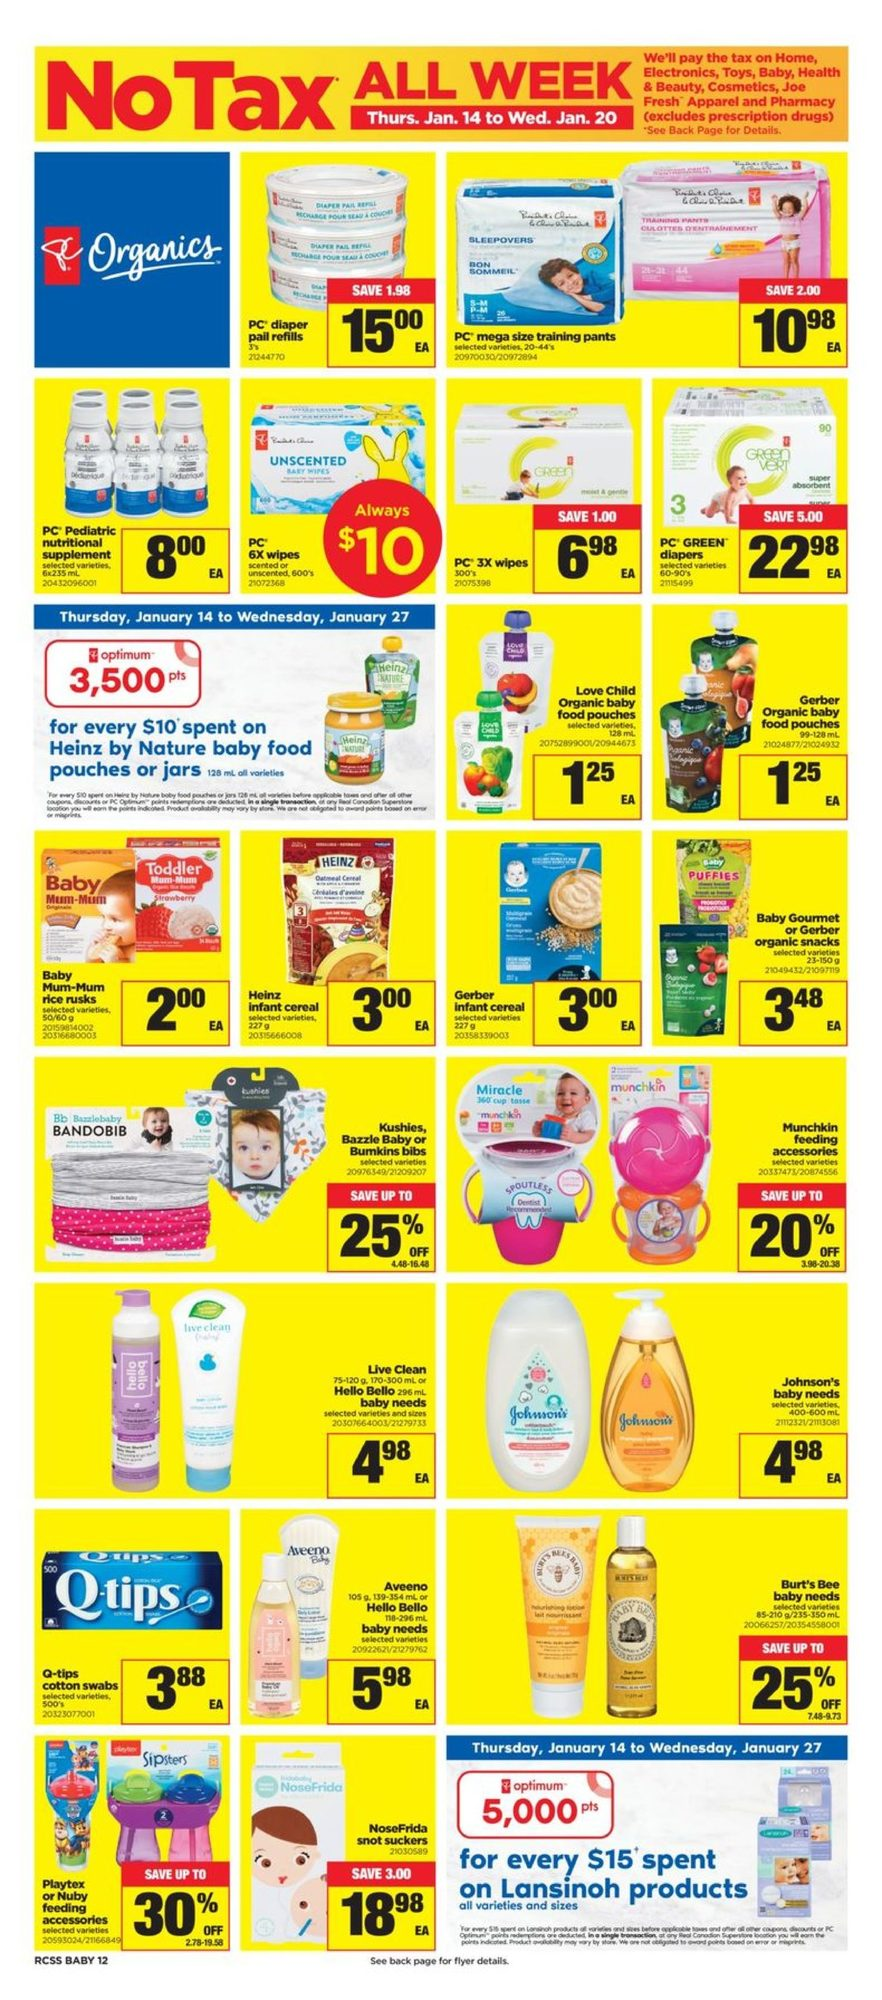 Real Canadian Superstore - Weekly Flyer Specials - Page 12